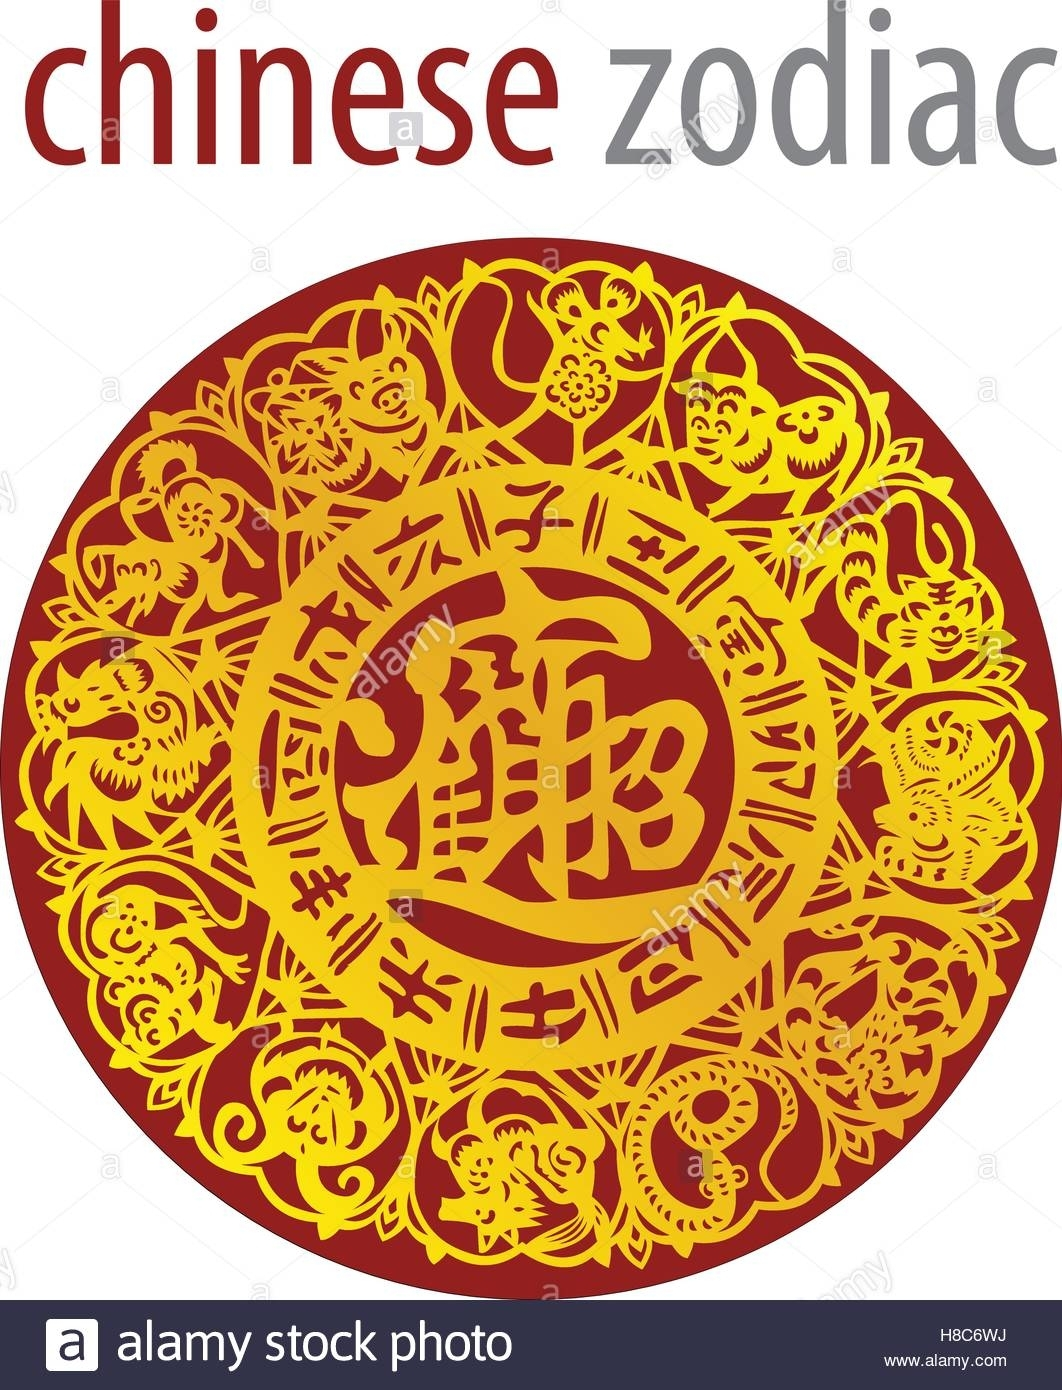 Chinese Zodiac Wheel With Signs And The Five Elements